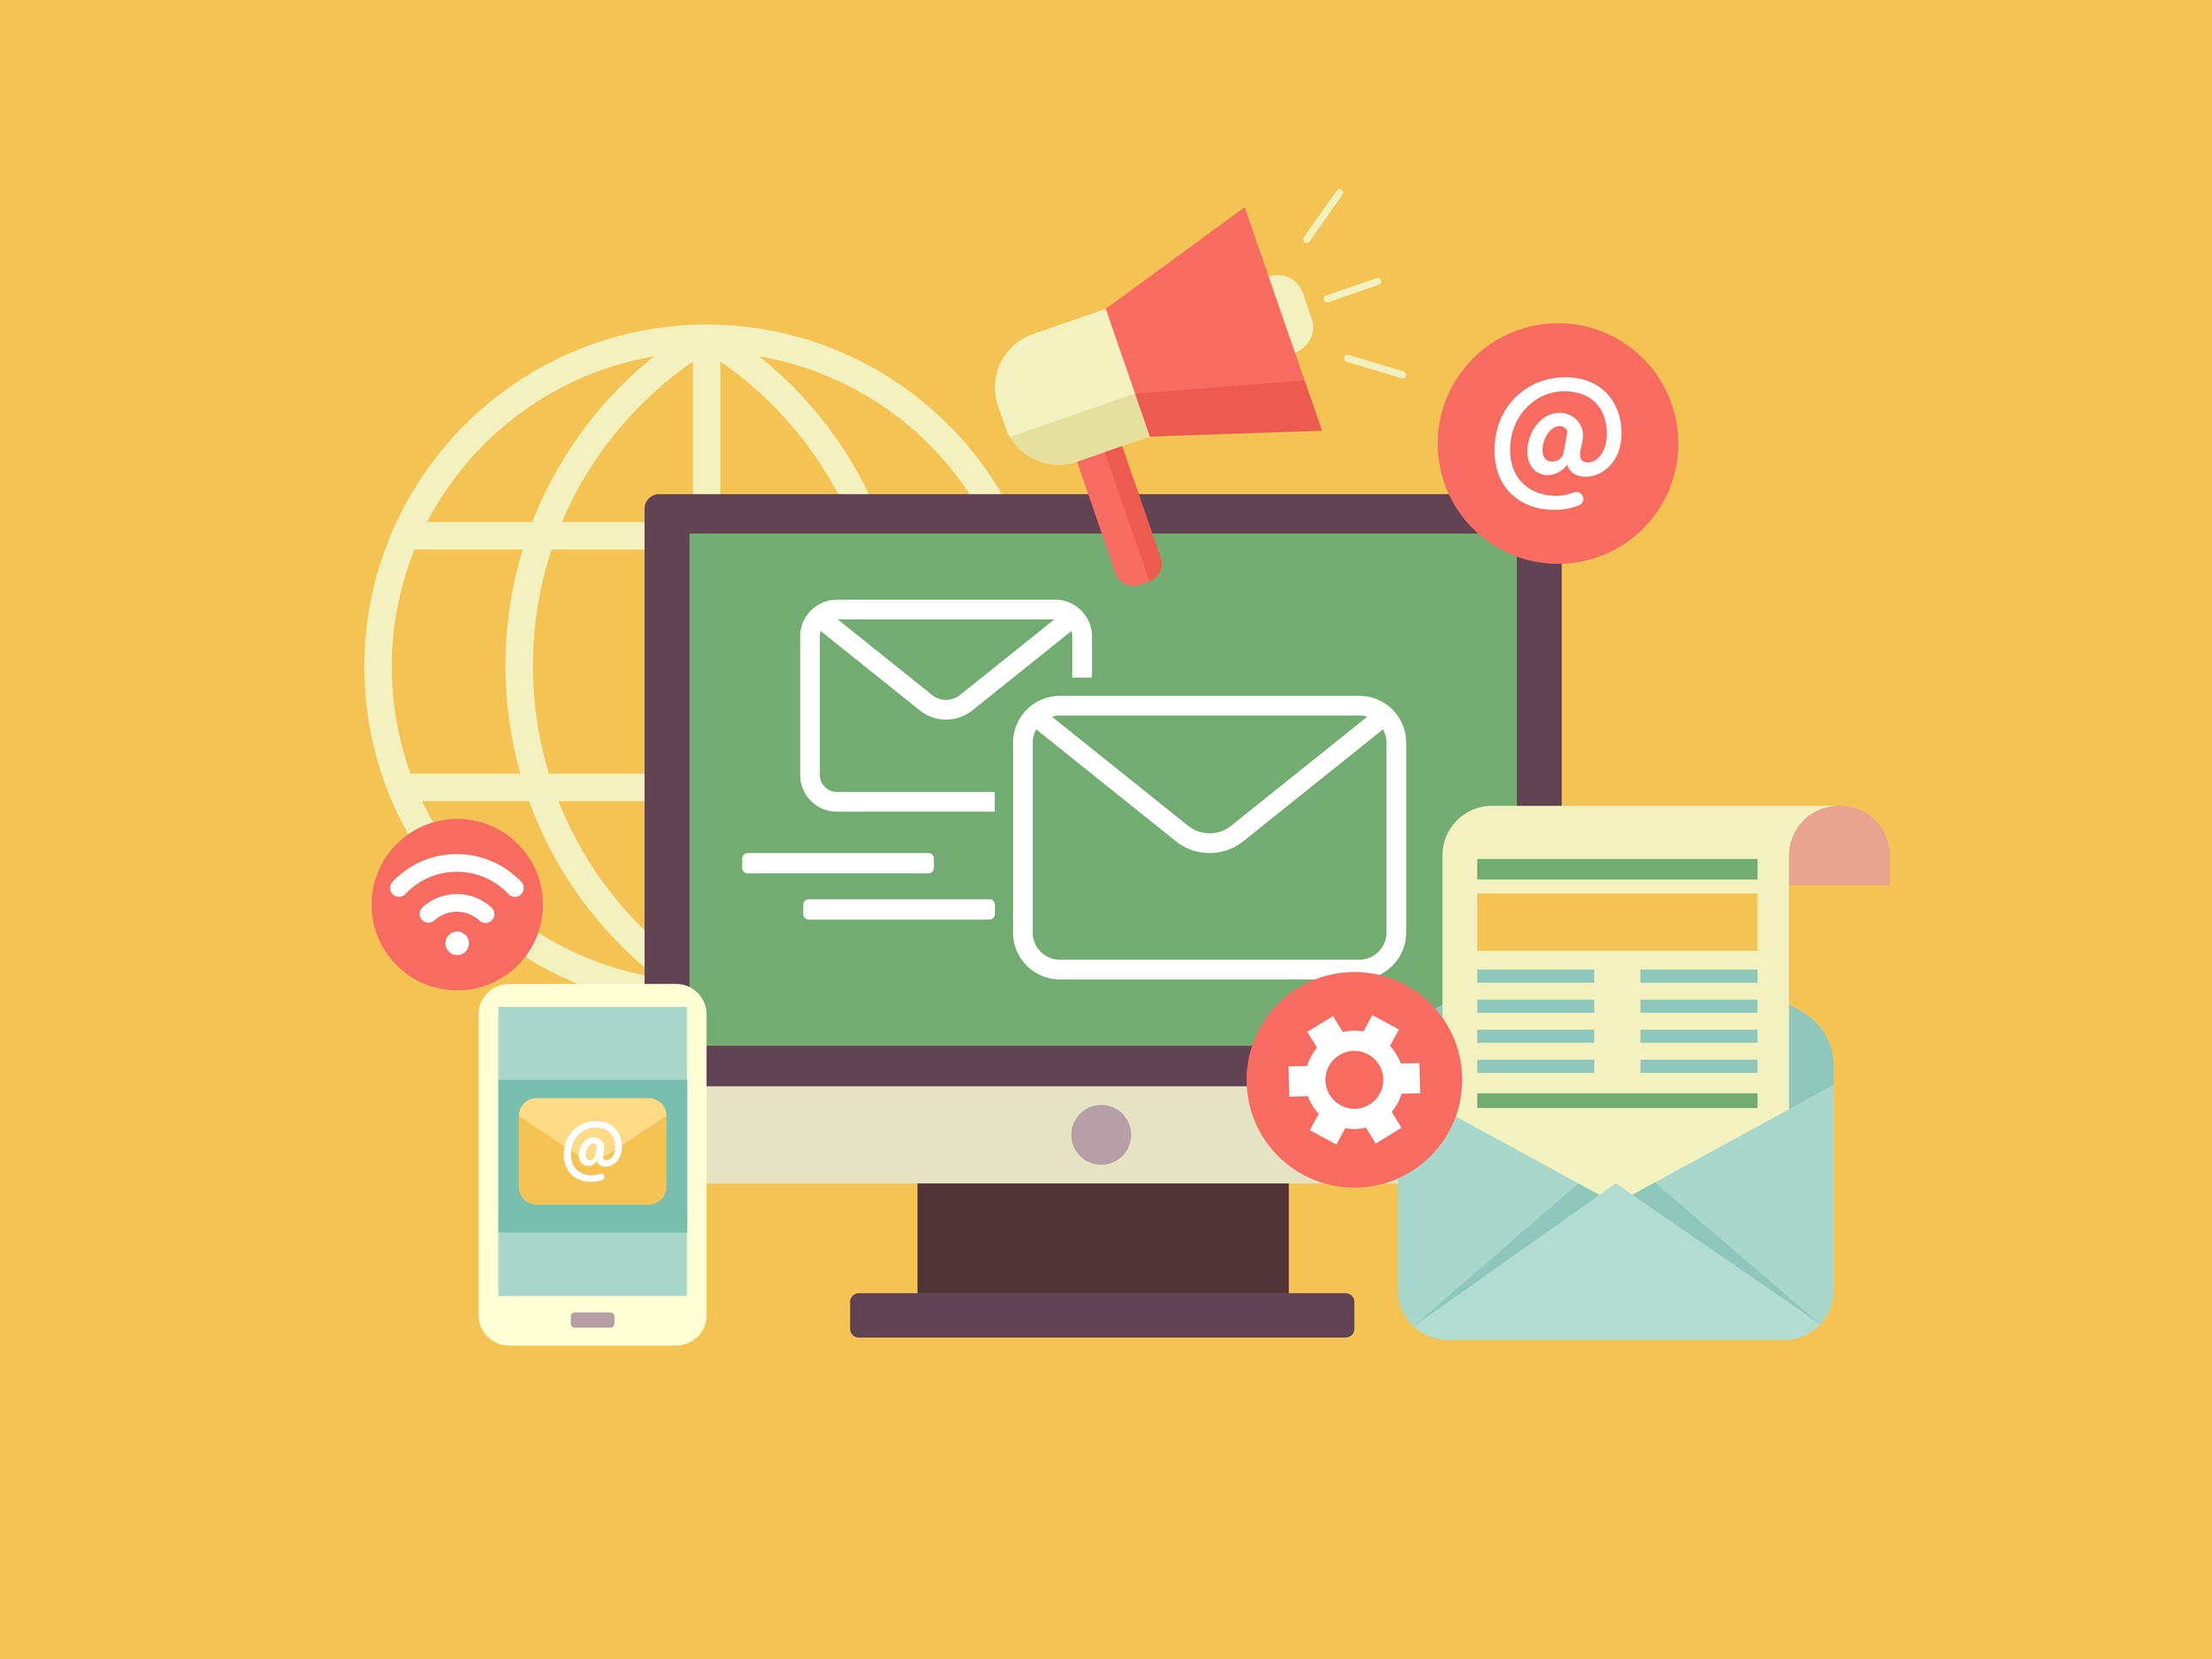 Pretty Please? Email Marketing Begins with Your Permission